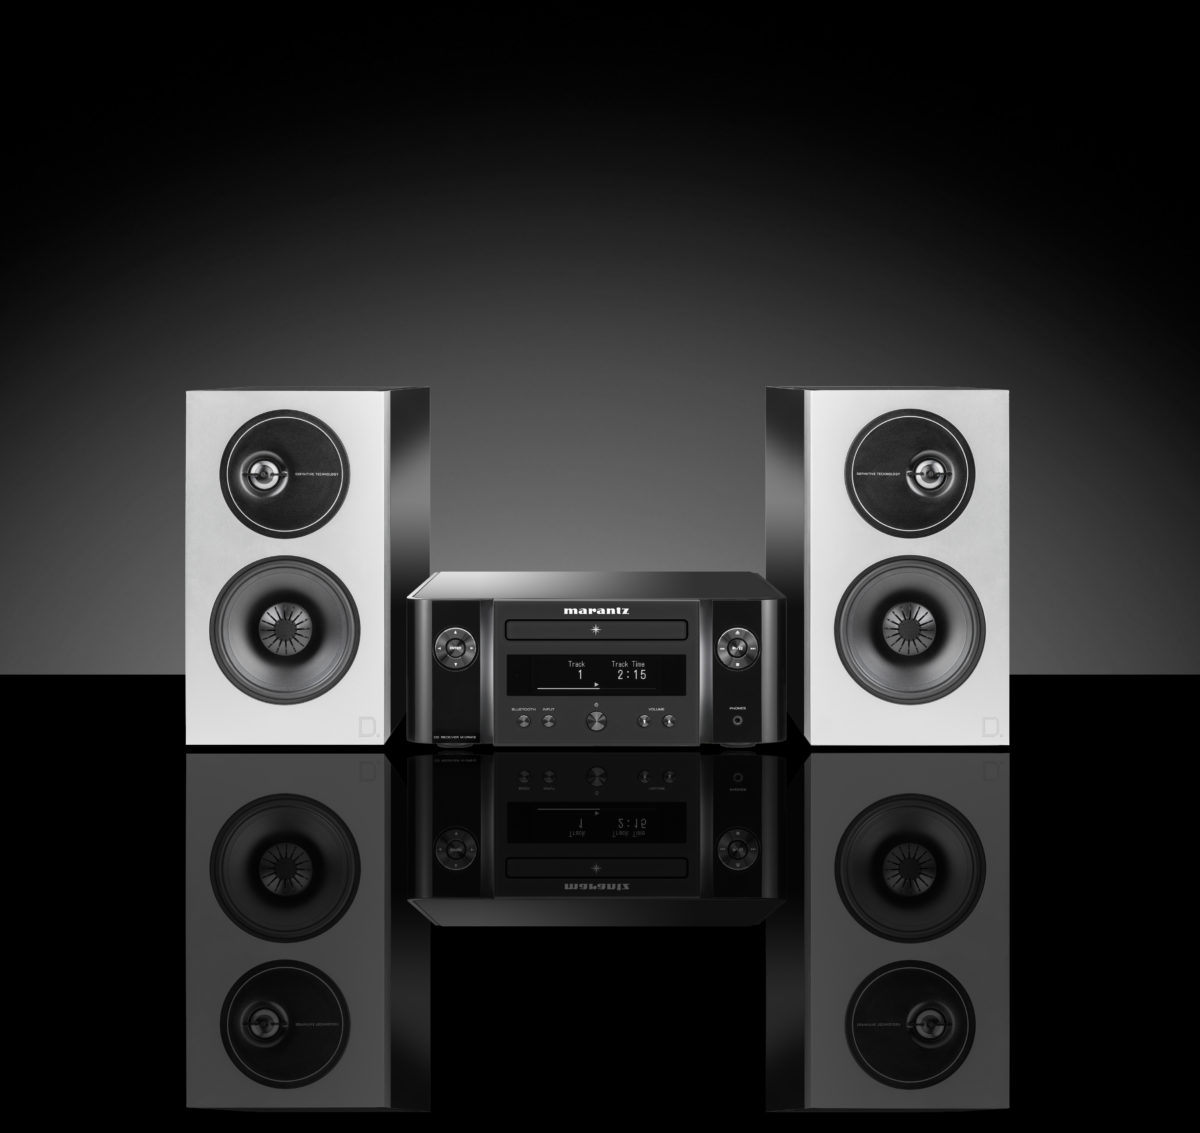 Marantz M-CR412 + Definitive Technology Demand D7 speakers